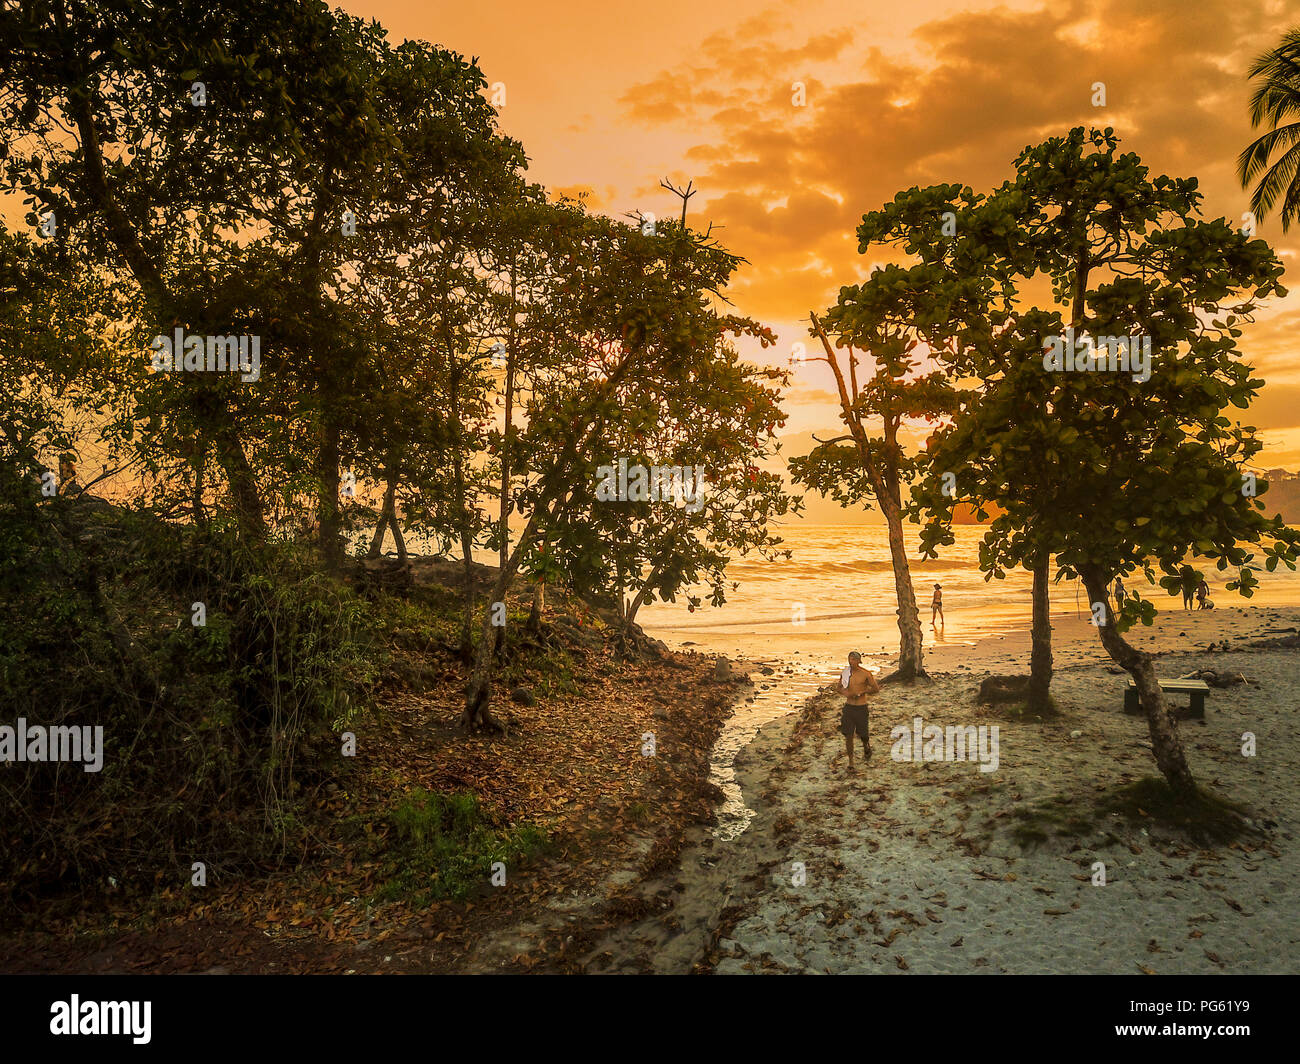 People enjoying the Sunset on the Beach, Corcovado National Park, Osa Peninsula, Costa Rica. This image is shot using a drone. - Stock Image